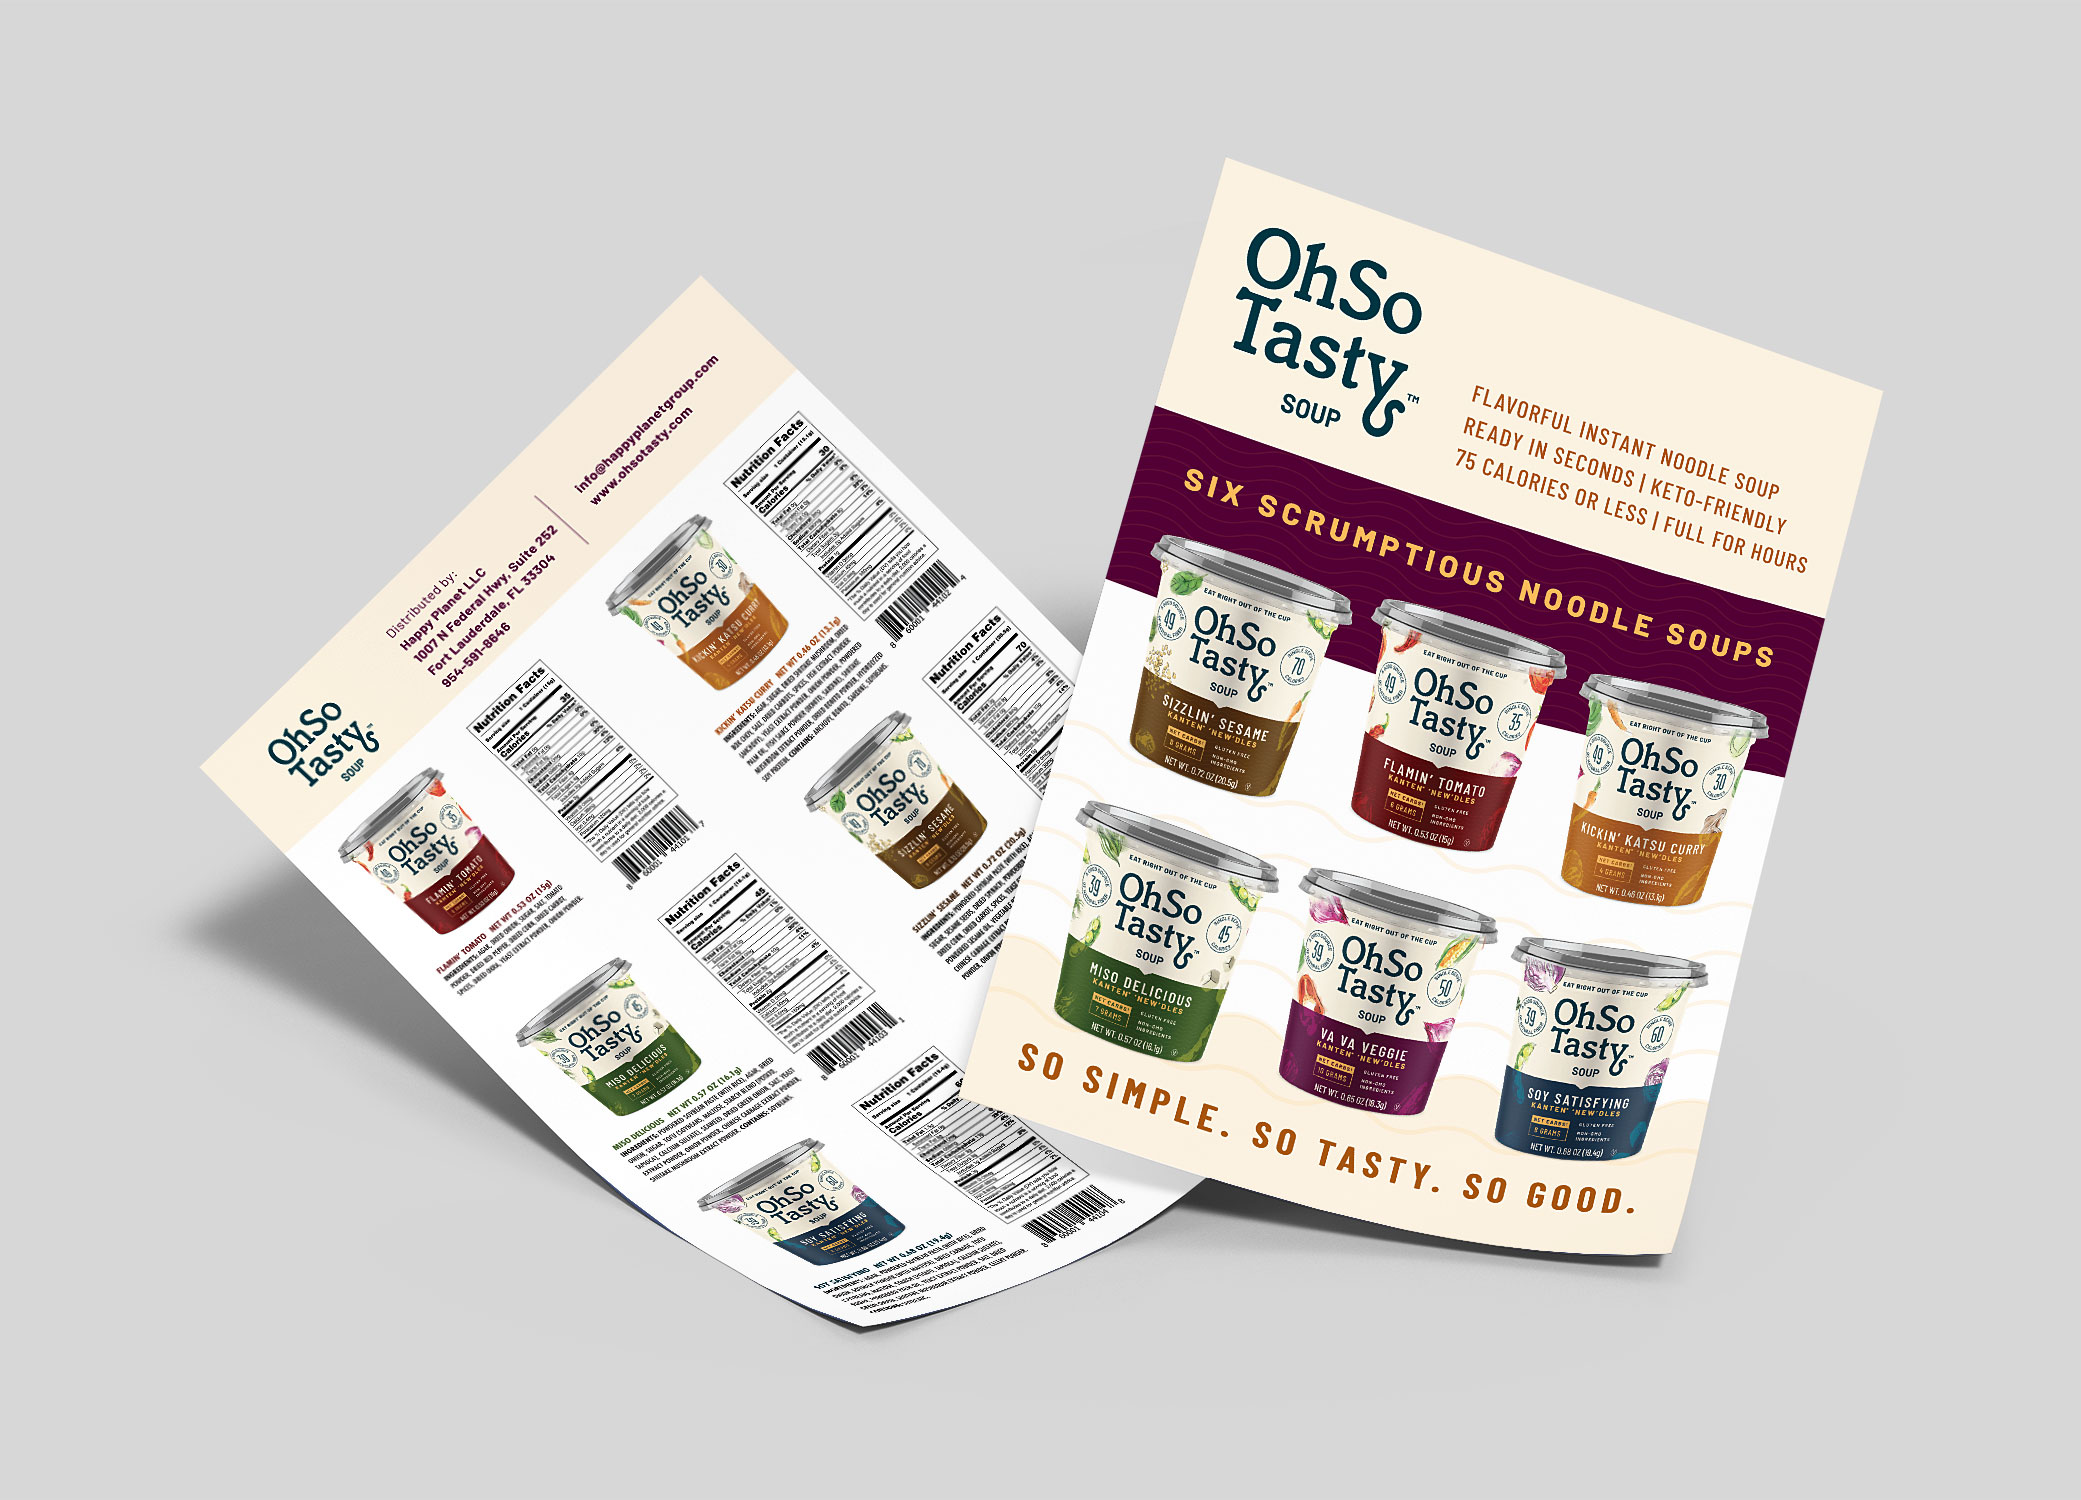 """OhSo Tasty sell sheets showing """"six scrumptious noodle soups"""" and nutrition information for each."""